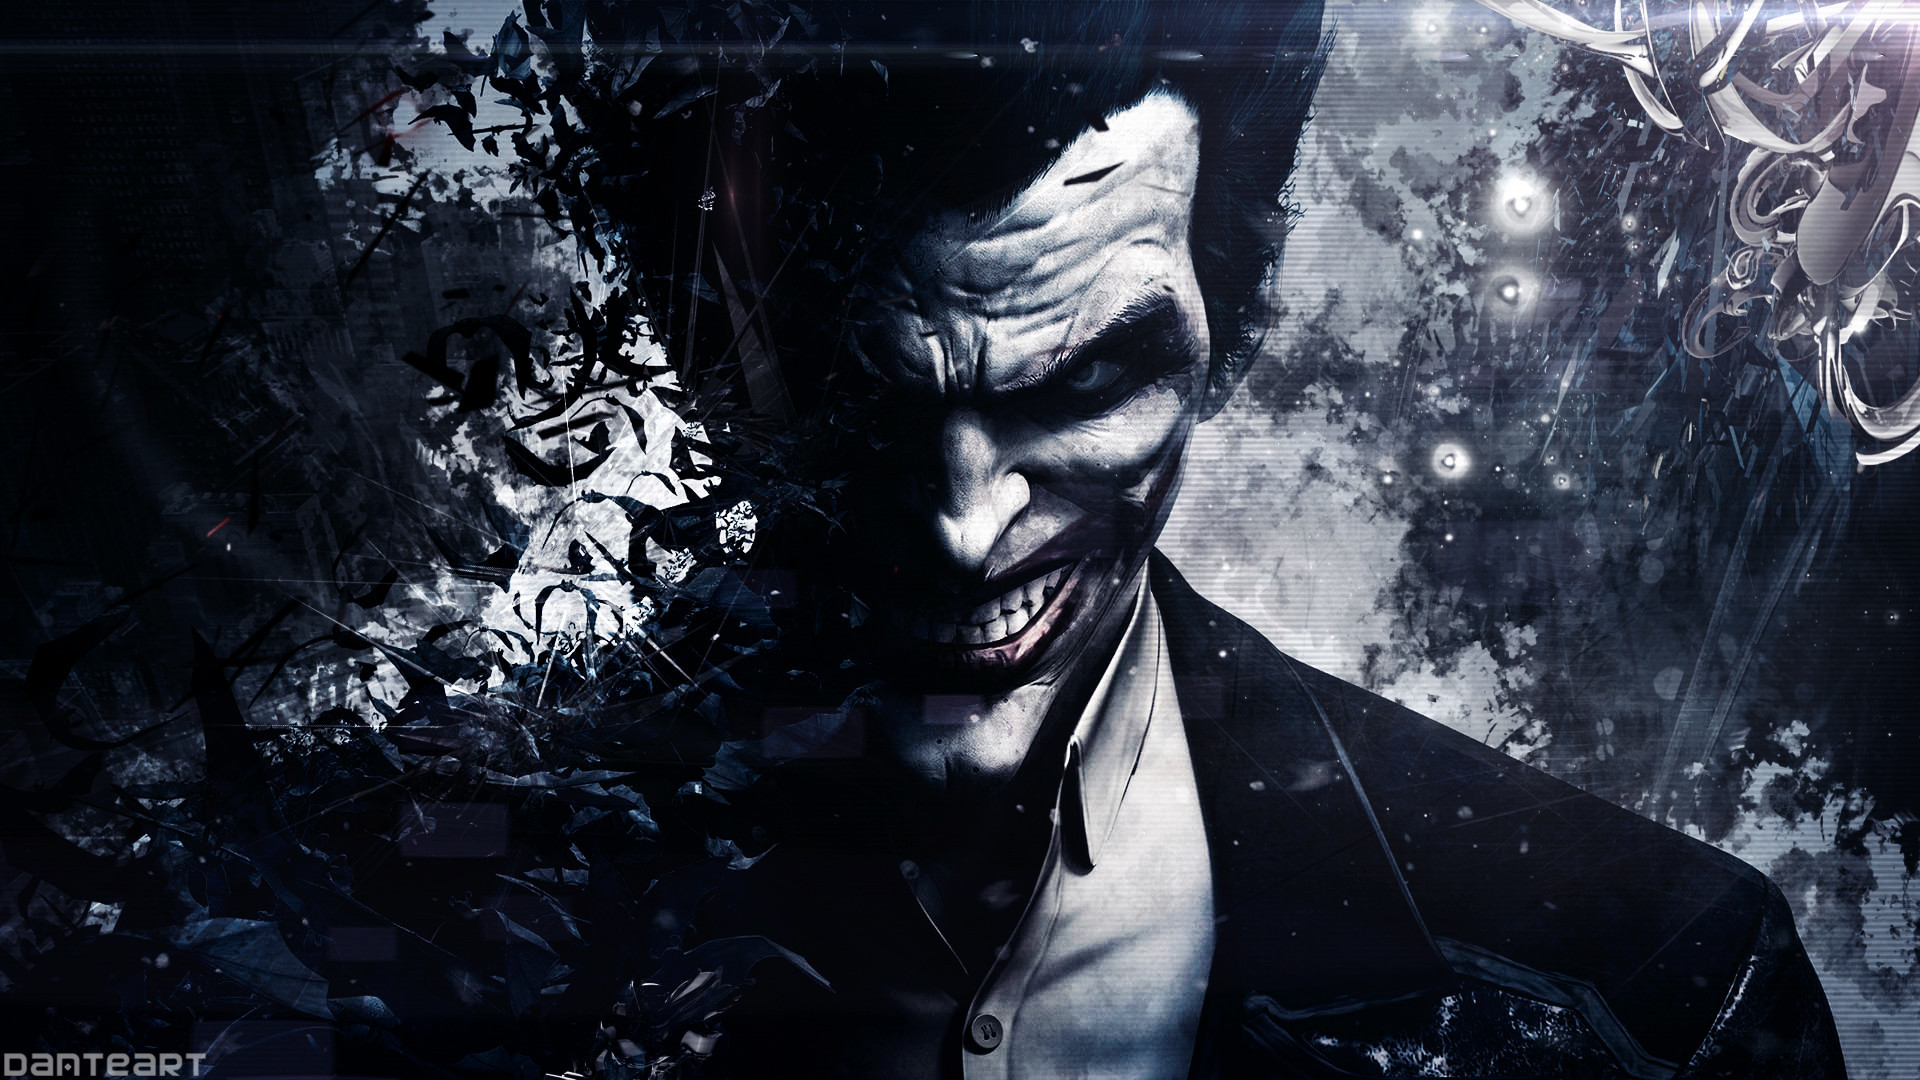 … Download Free 85 Joker Wallpaper (The Dark Knight) The Quotes Land